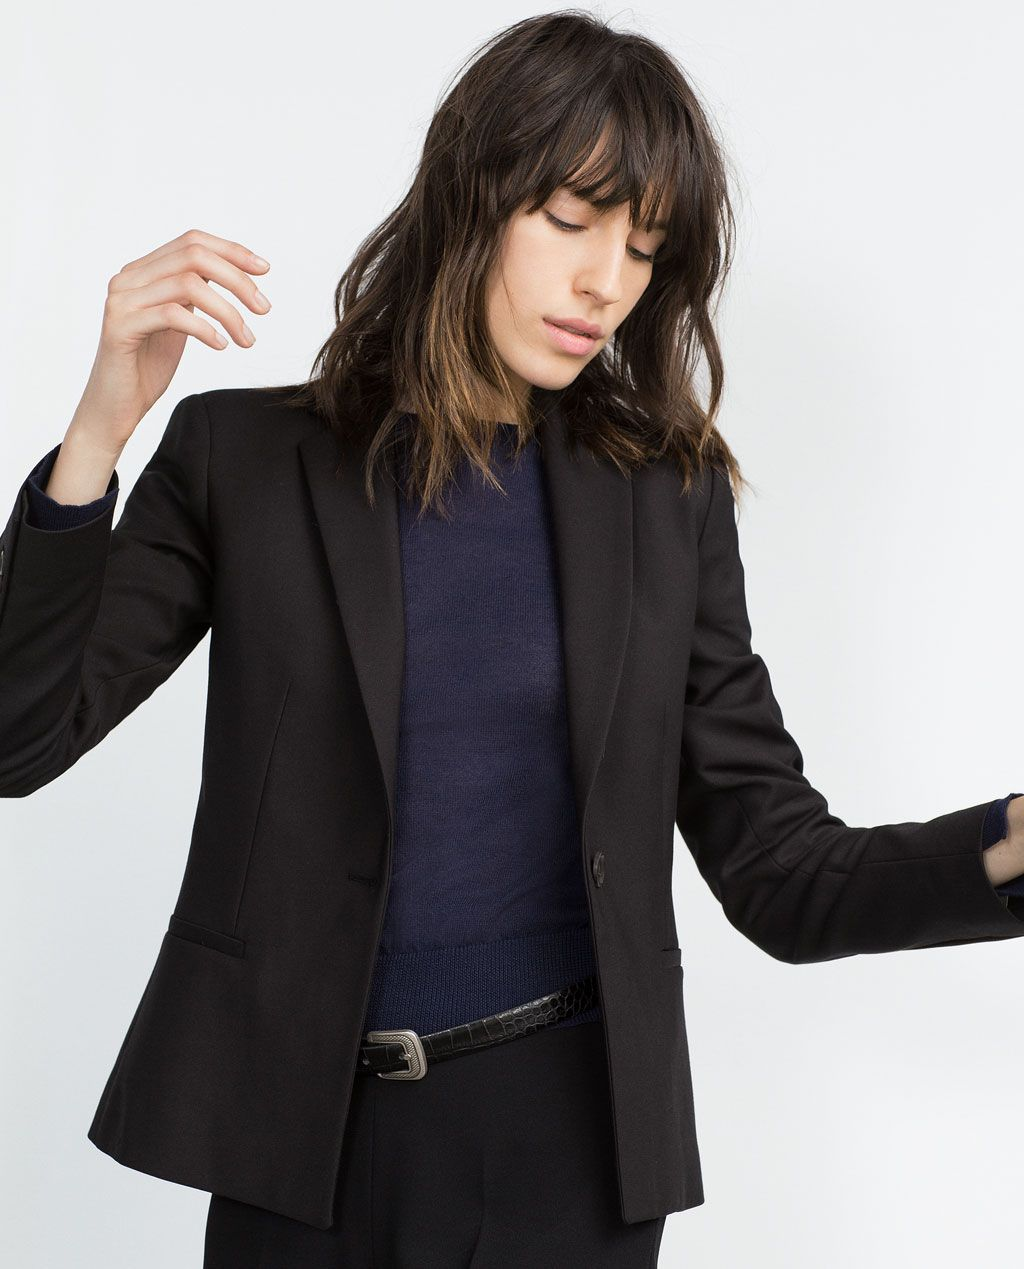 ZARA - COLLECTION AW15 - DOUBLE FABRIC BLAZER